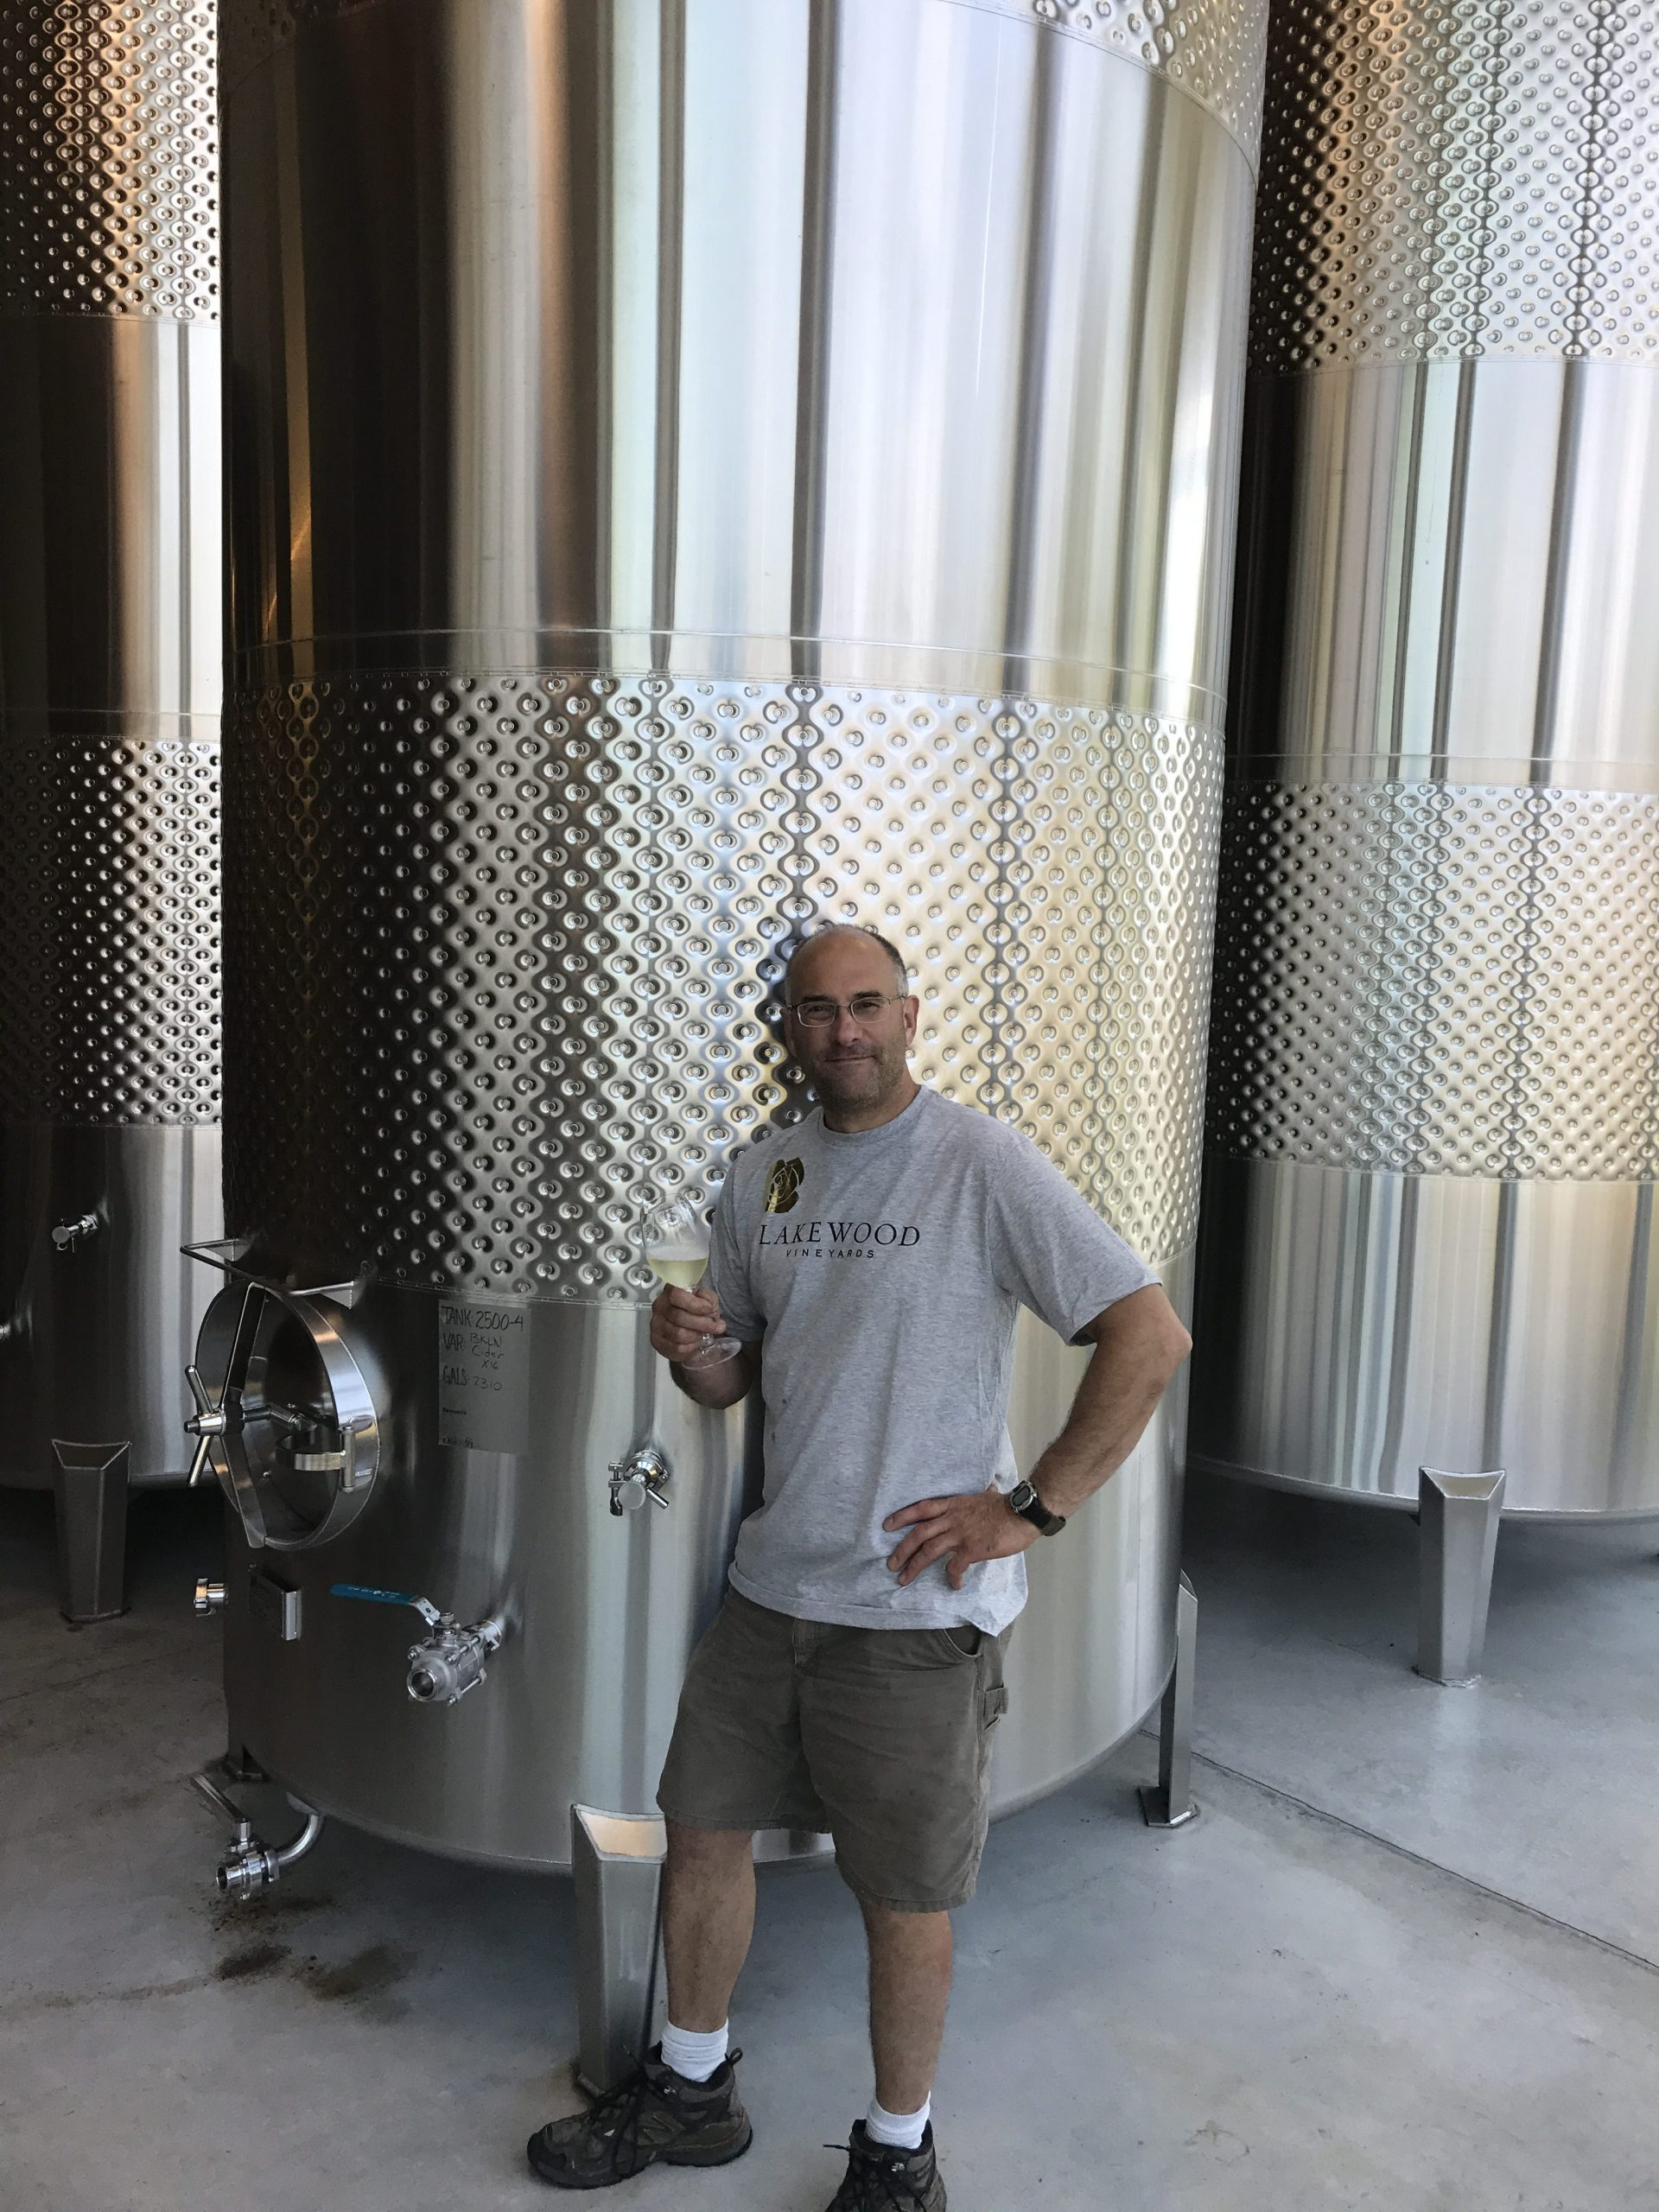 Meet Chris Stamp – Winemaker at Lakewood Vineyards